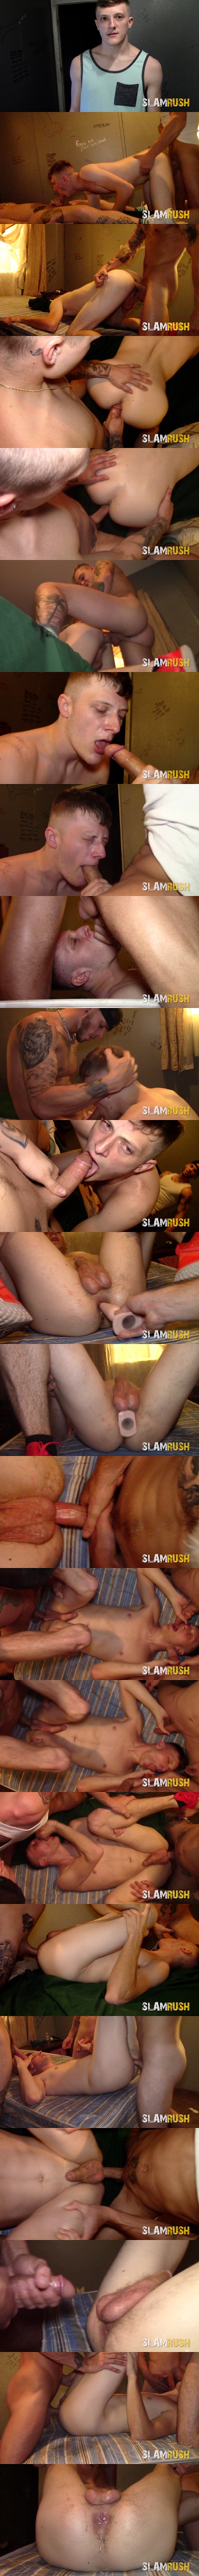 Slamrush - Street fuckers Justin Case, Tanner and Tony Hawg gangbang and bareback cum slut Holt Wood before they creampie Holt in Holt's bottoming debut in Deep Seed 02